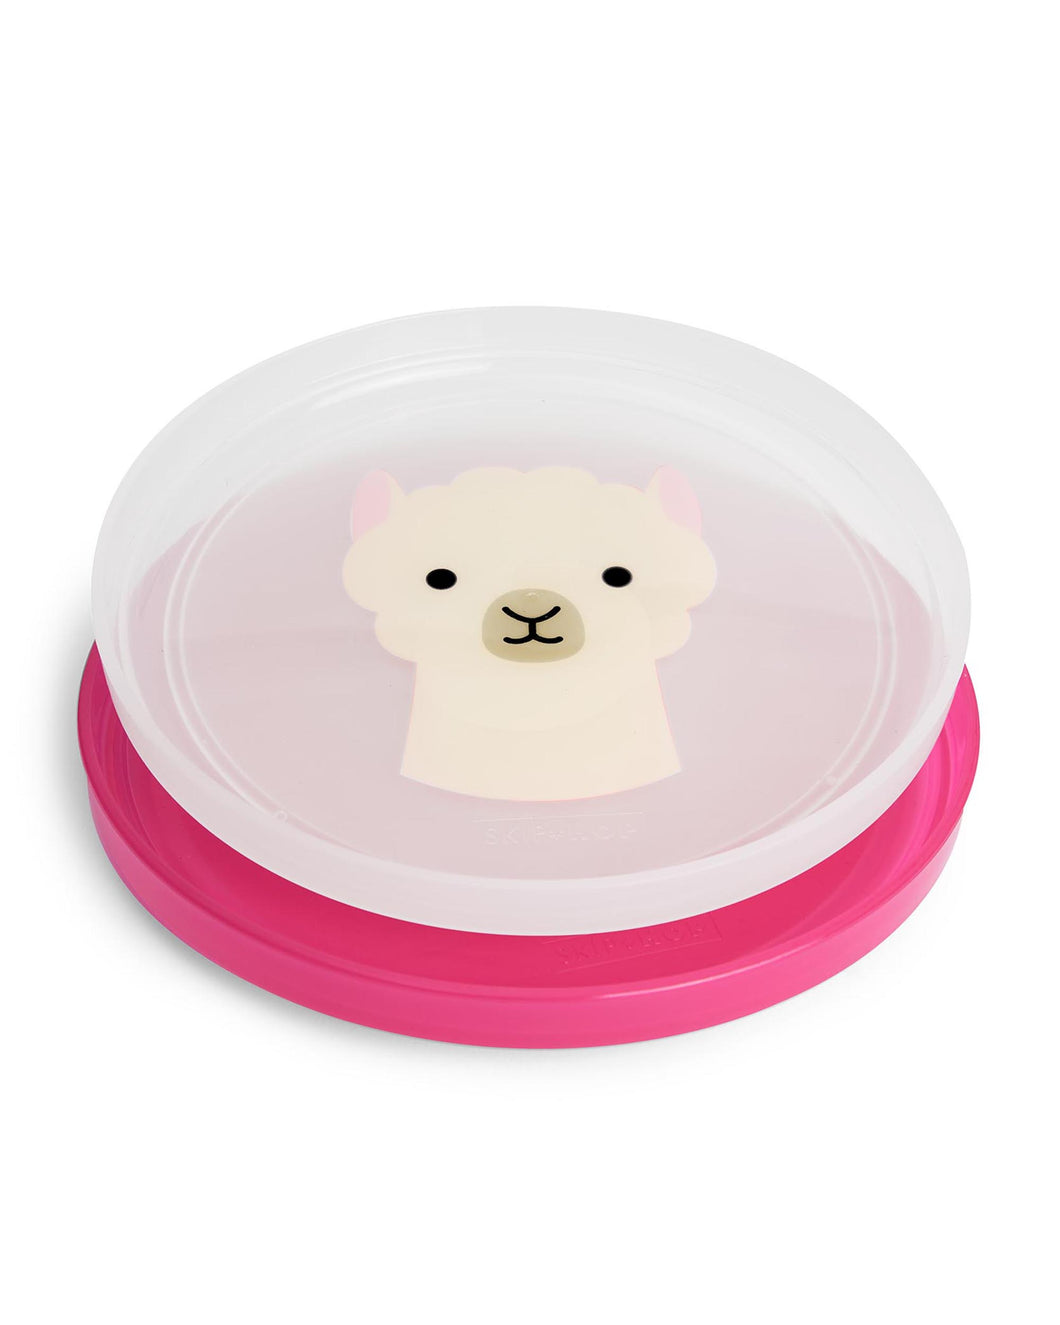 Skip Hop Smart Serve Non-Slip Plates - Llama - CeCe Fashion Boutique